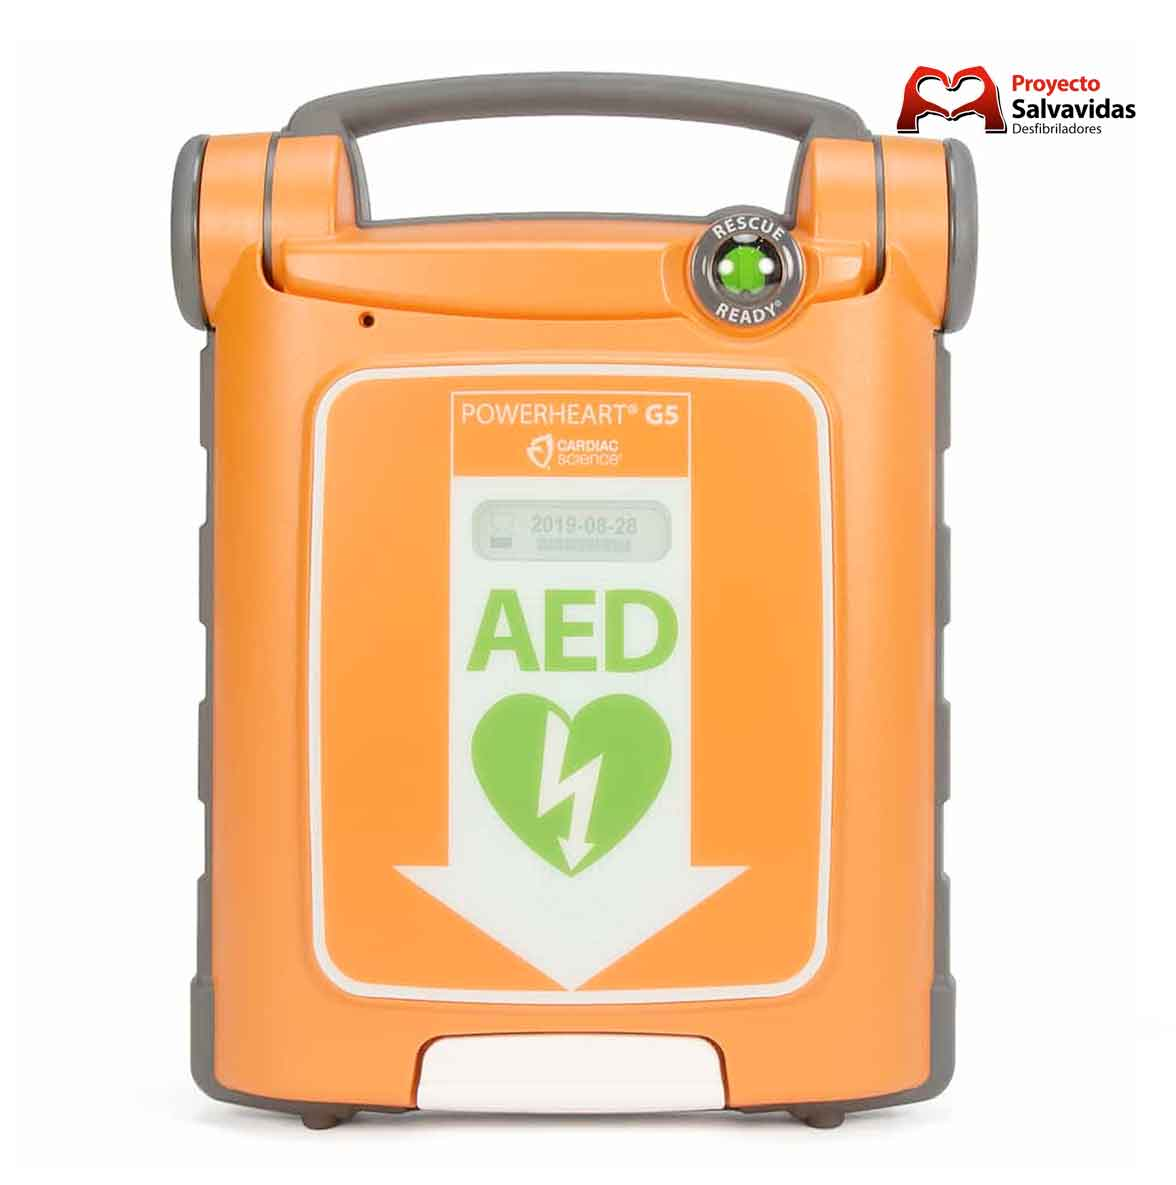 Venda / aluguer de desfibrilador Cardiac Science Powerheart G5